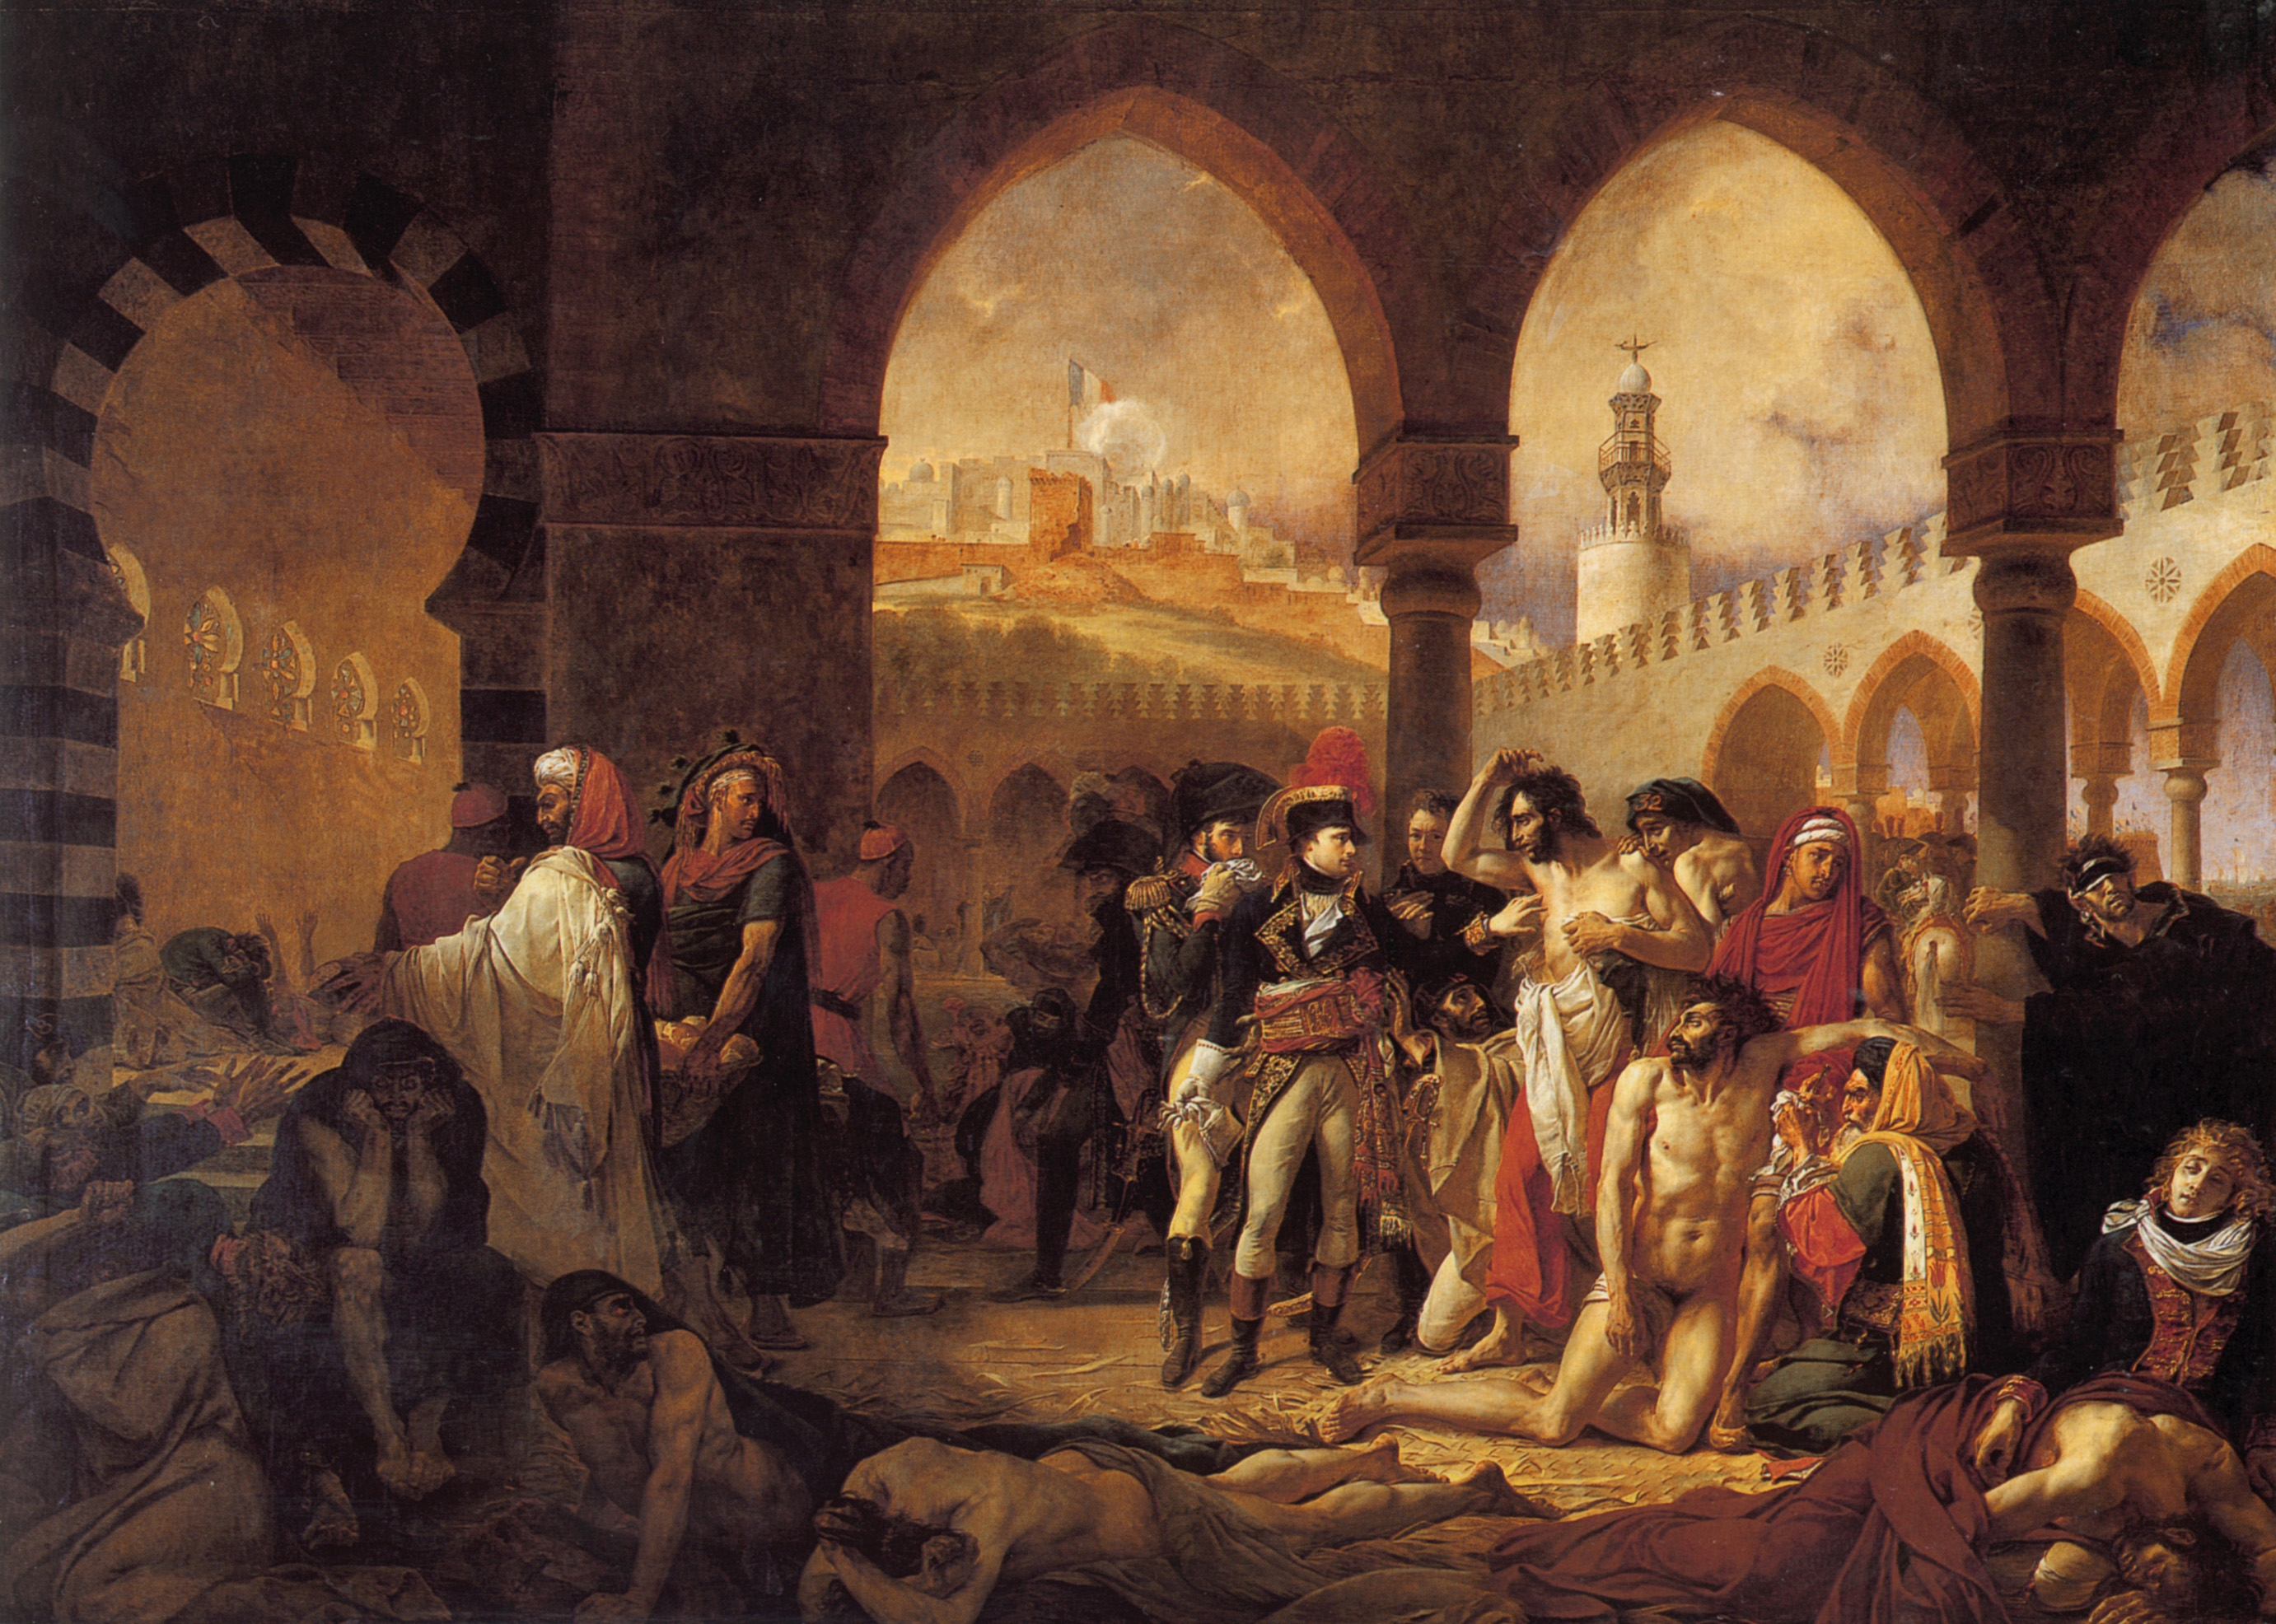 The picture Bonaparte Visits the Plague Stricken in Jaffa by French painter Antoine-Jean Gros.